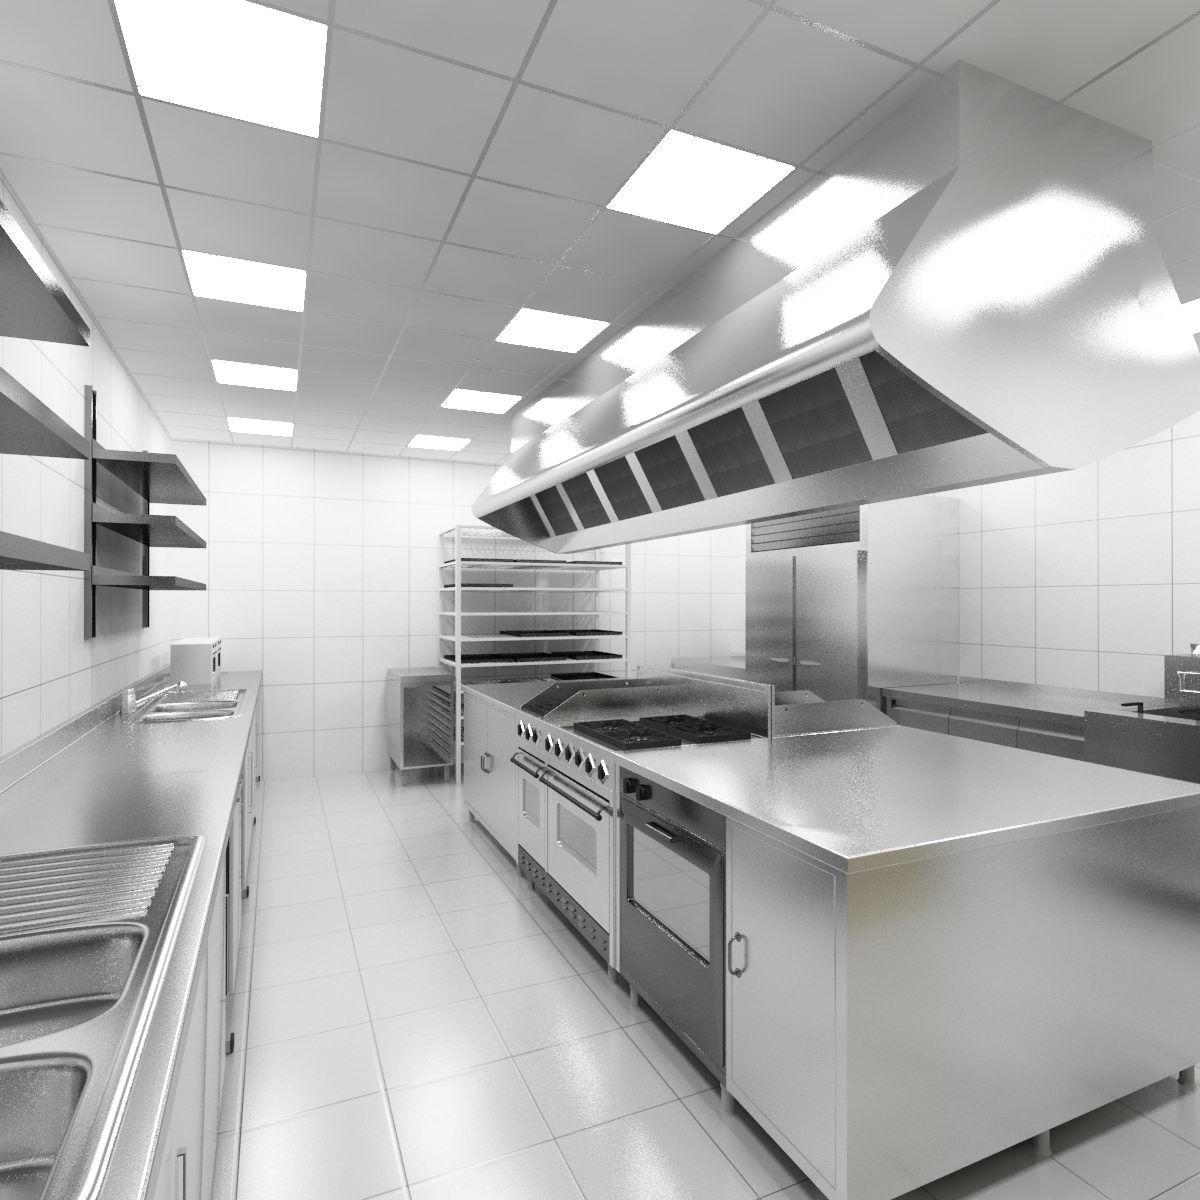 Commercial Kitchen 3d Design 3d Industrial Kitchen Model Другие категории Industrial Bedroom